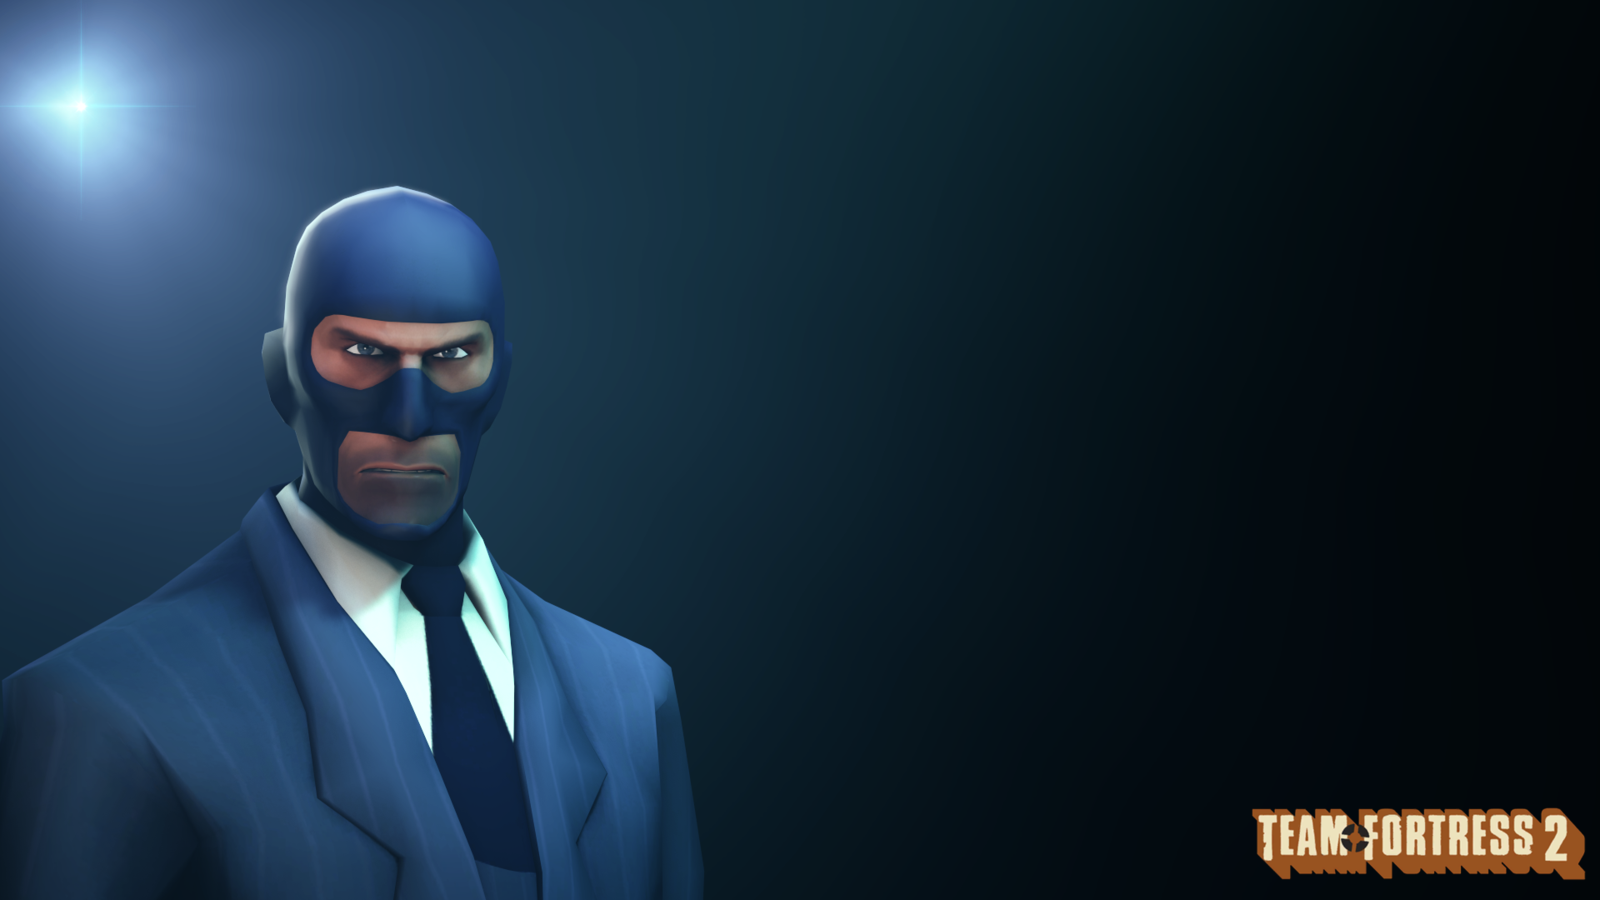 Tf2 Wallpaper Spy Posted By John Cunningham